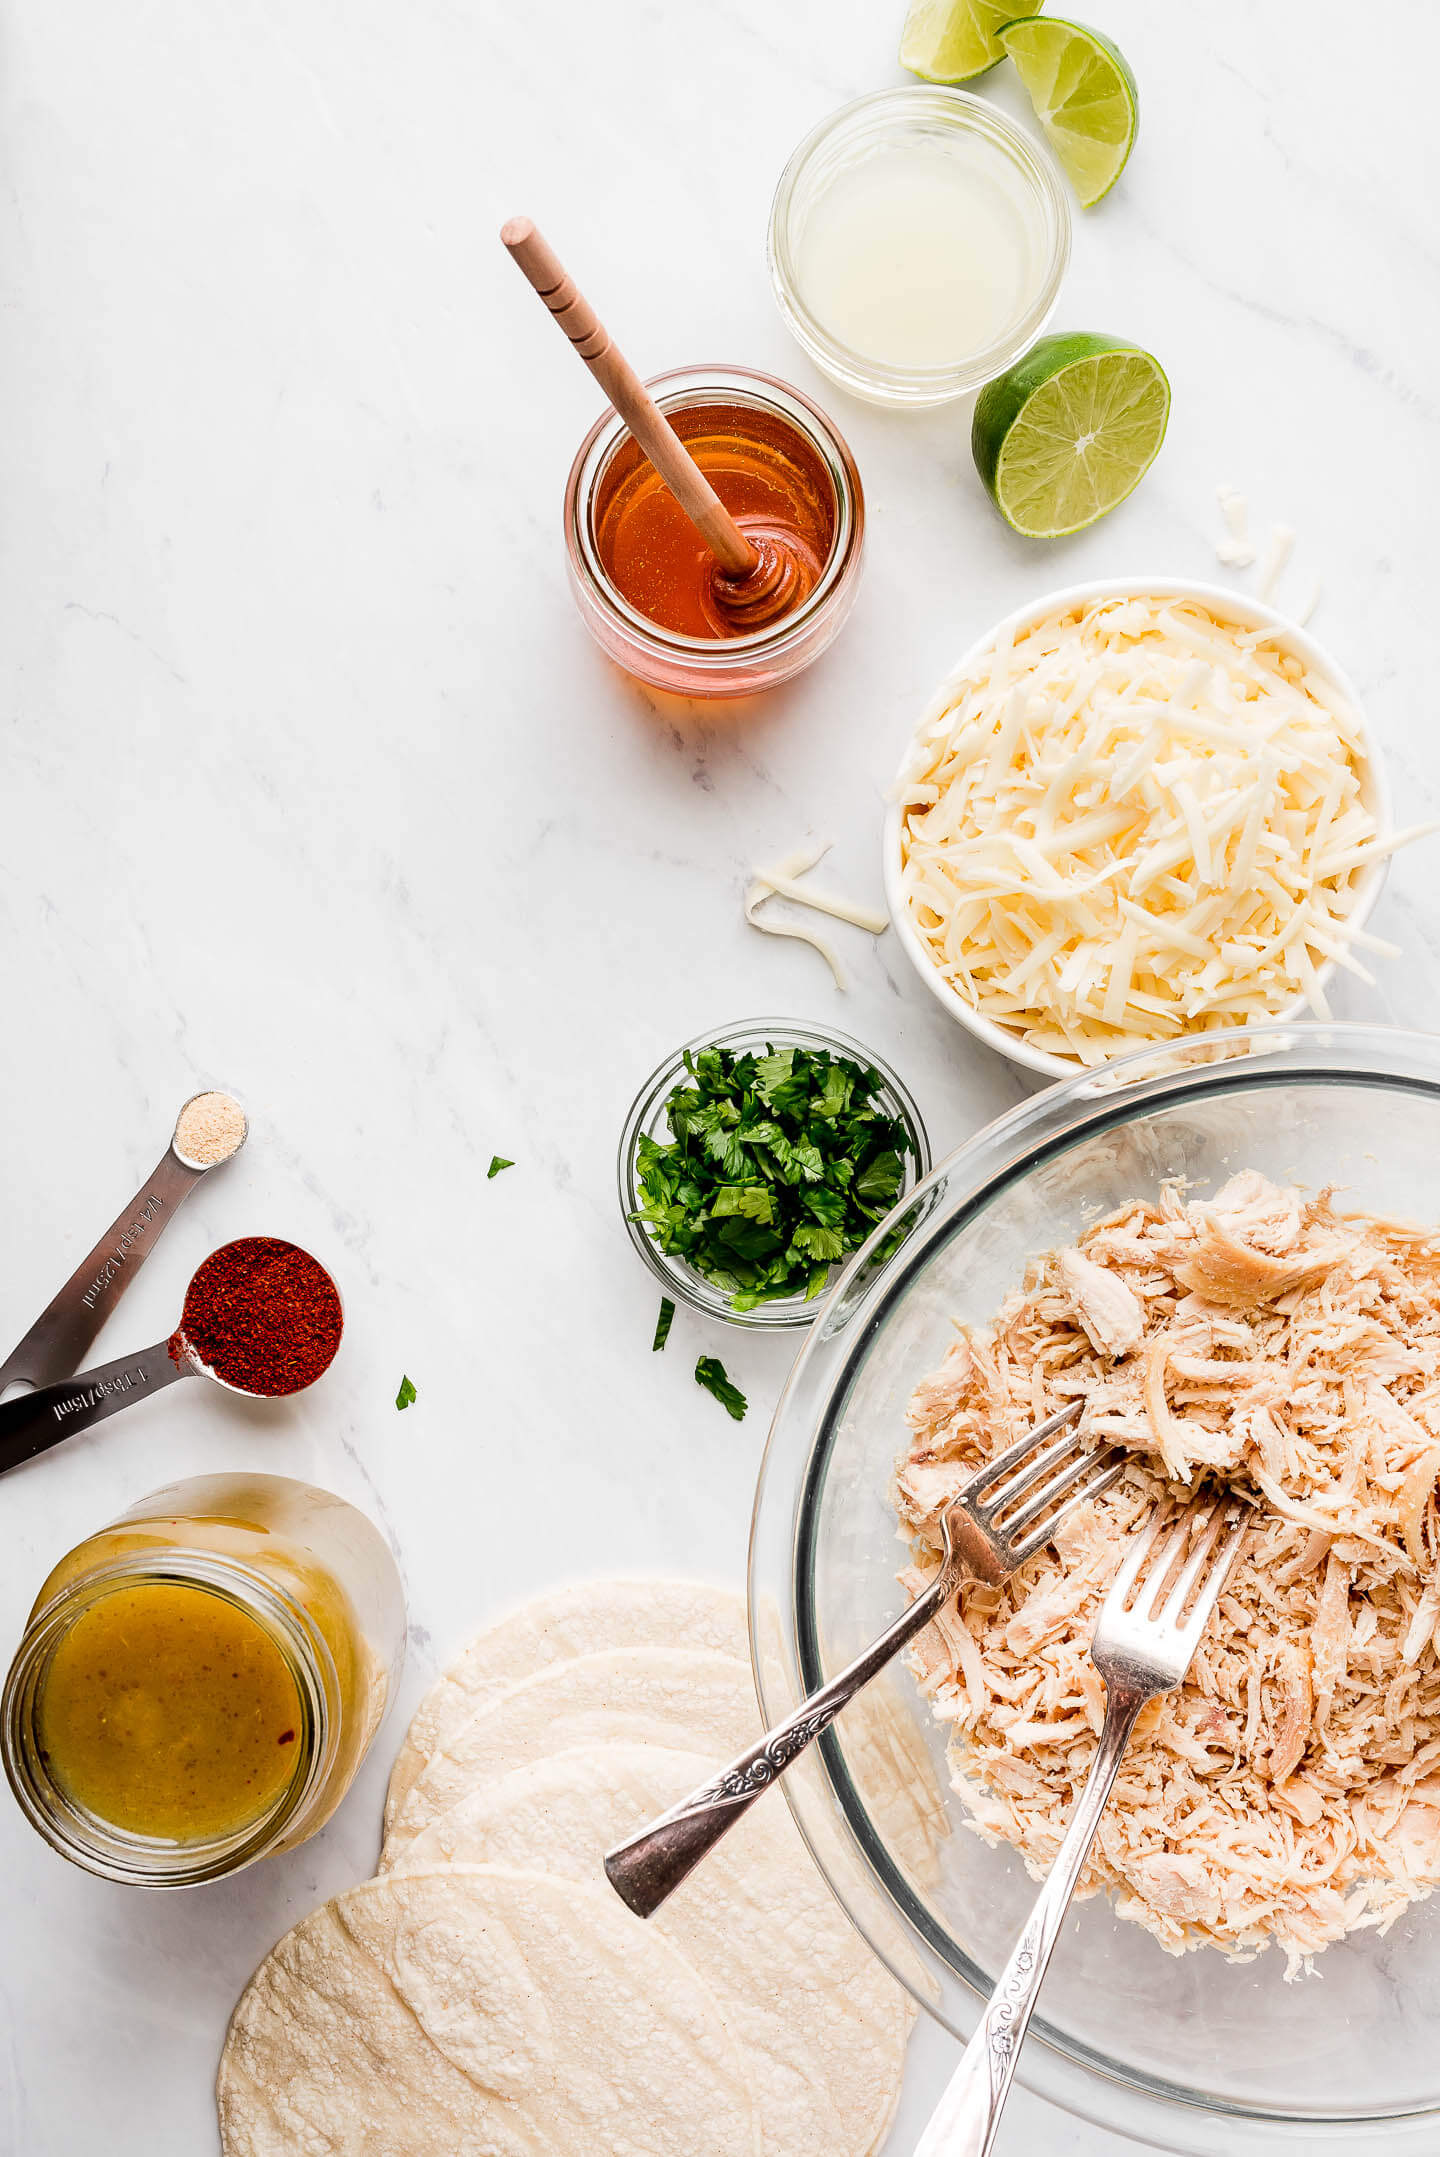 Ingredients on a marble surface- lime juice, honey, shredded cheese, cilantro, shredded chicken, corn tortillas, spices, green sauce.